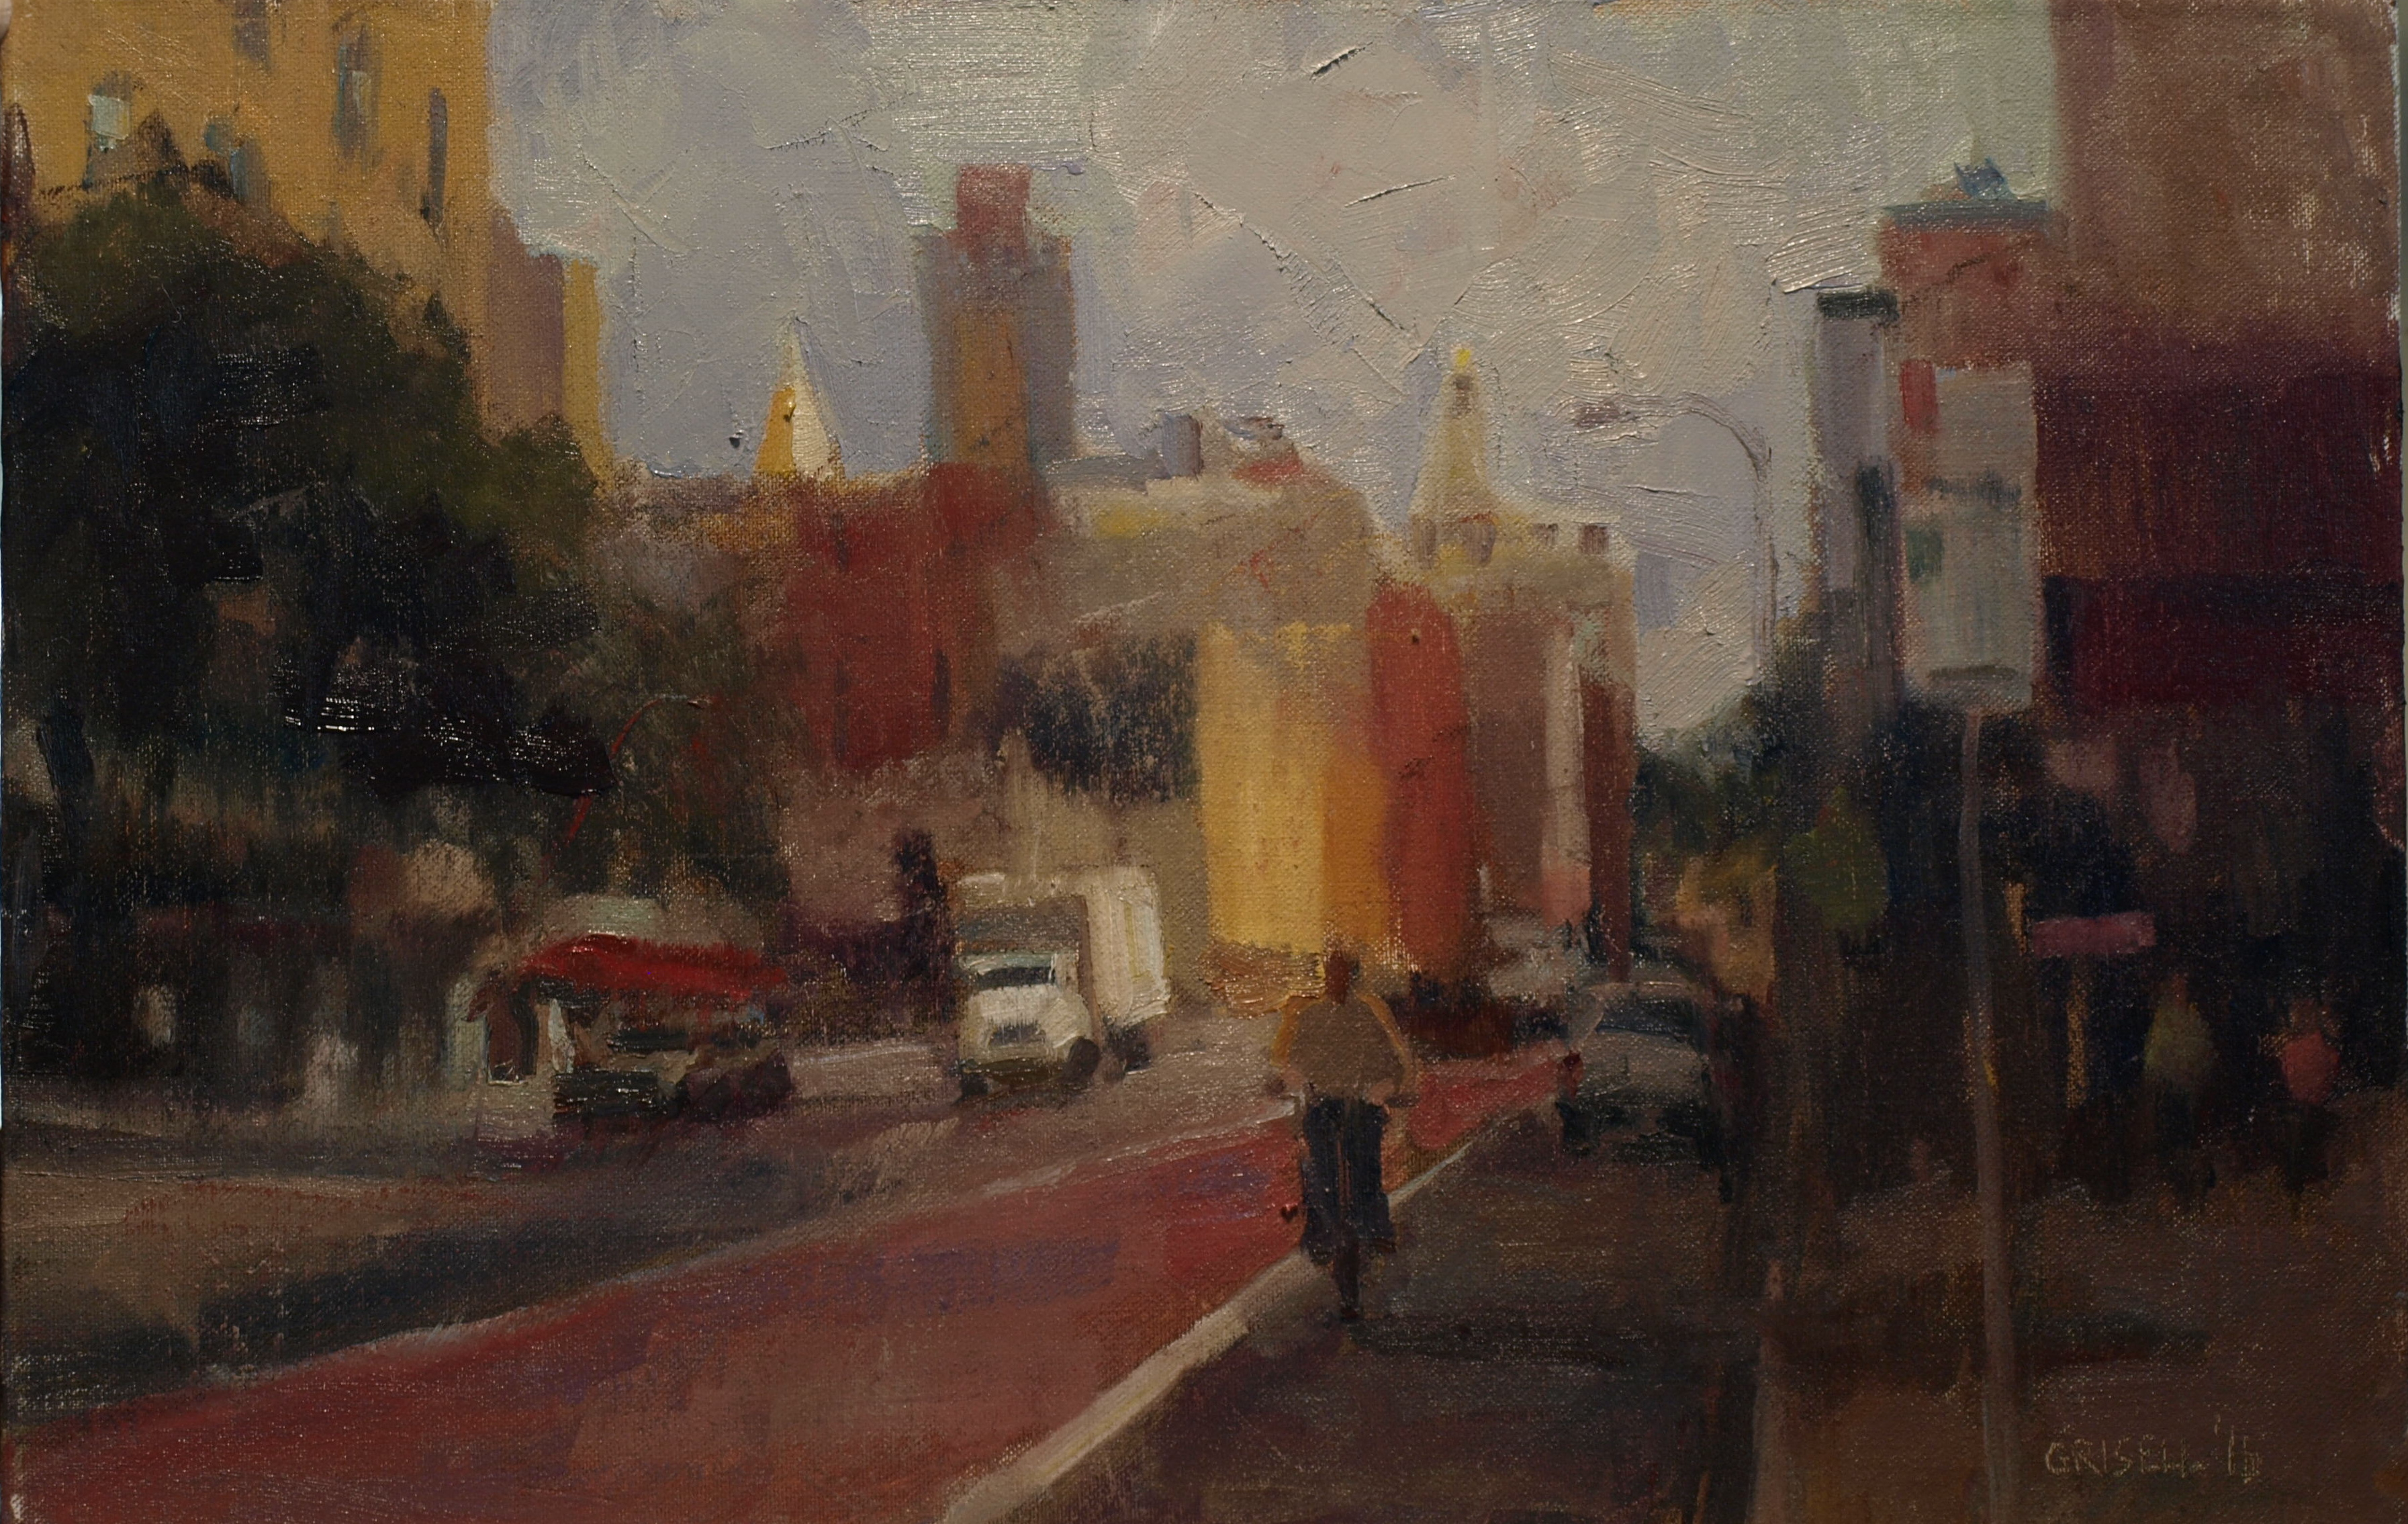 Chelsea Street, Oil on Canvas on Panel, 12 x 18 Inches, by Susan Grisell, $300